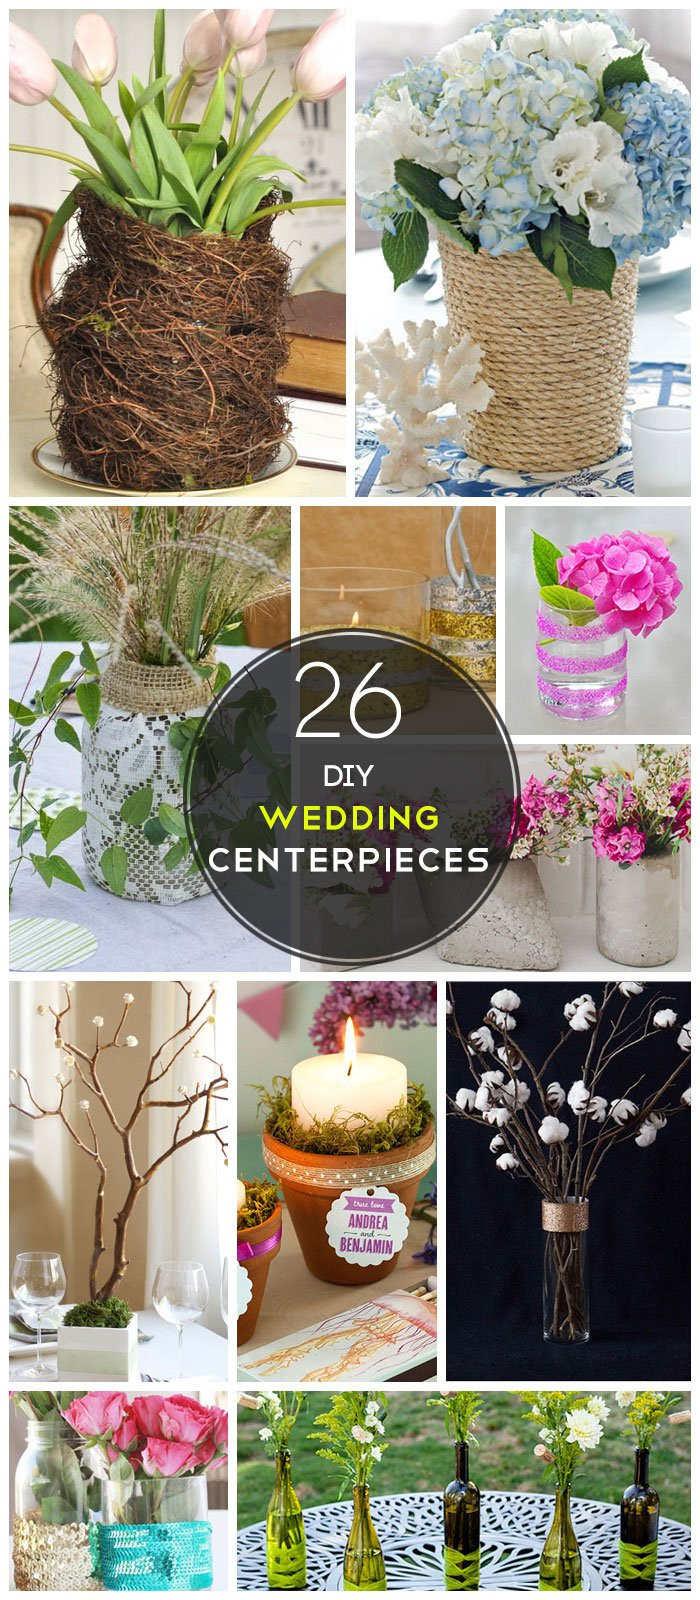 Best ideas about DIY Wedding Decor On A Budget . Save or Pin 26 DIY Wedding Centerpieces on a Bud Now.